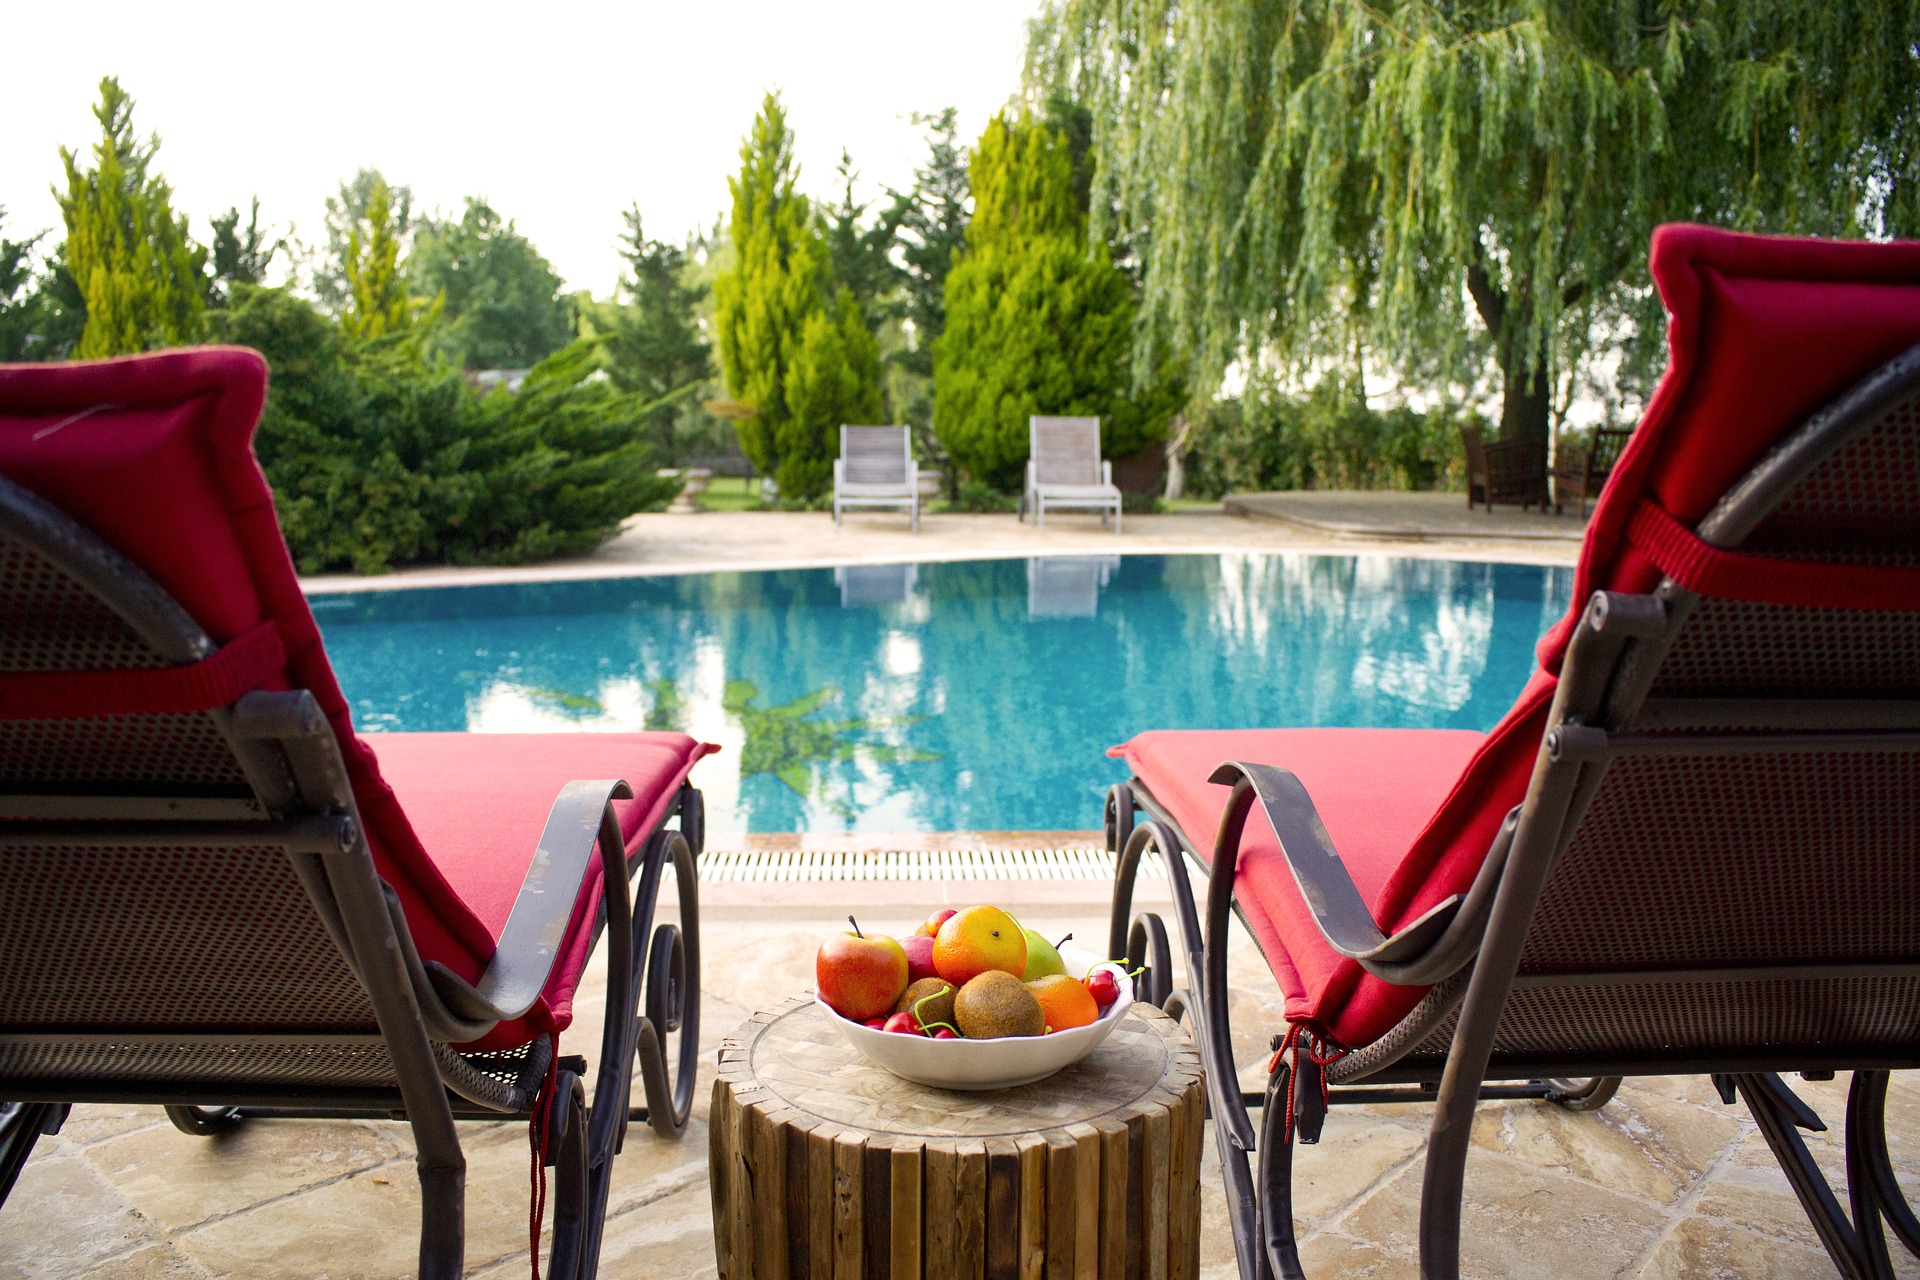 Residential pool construction makes a big splash in 2020